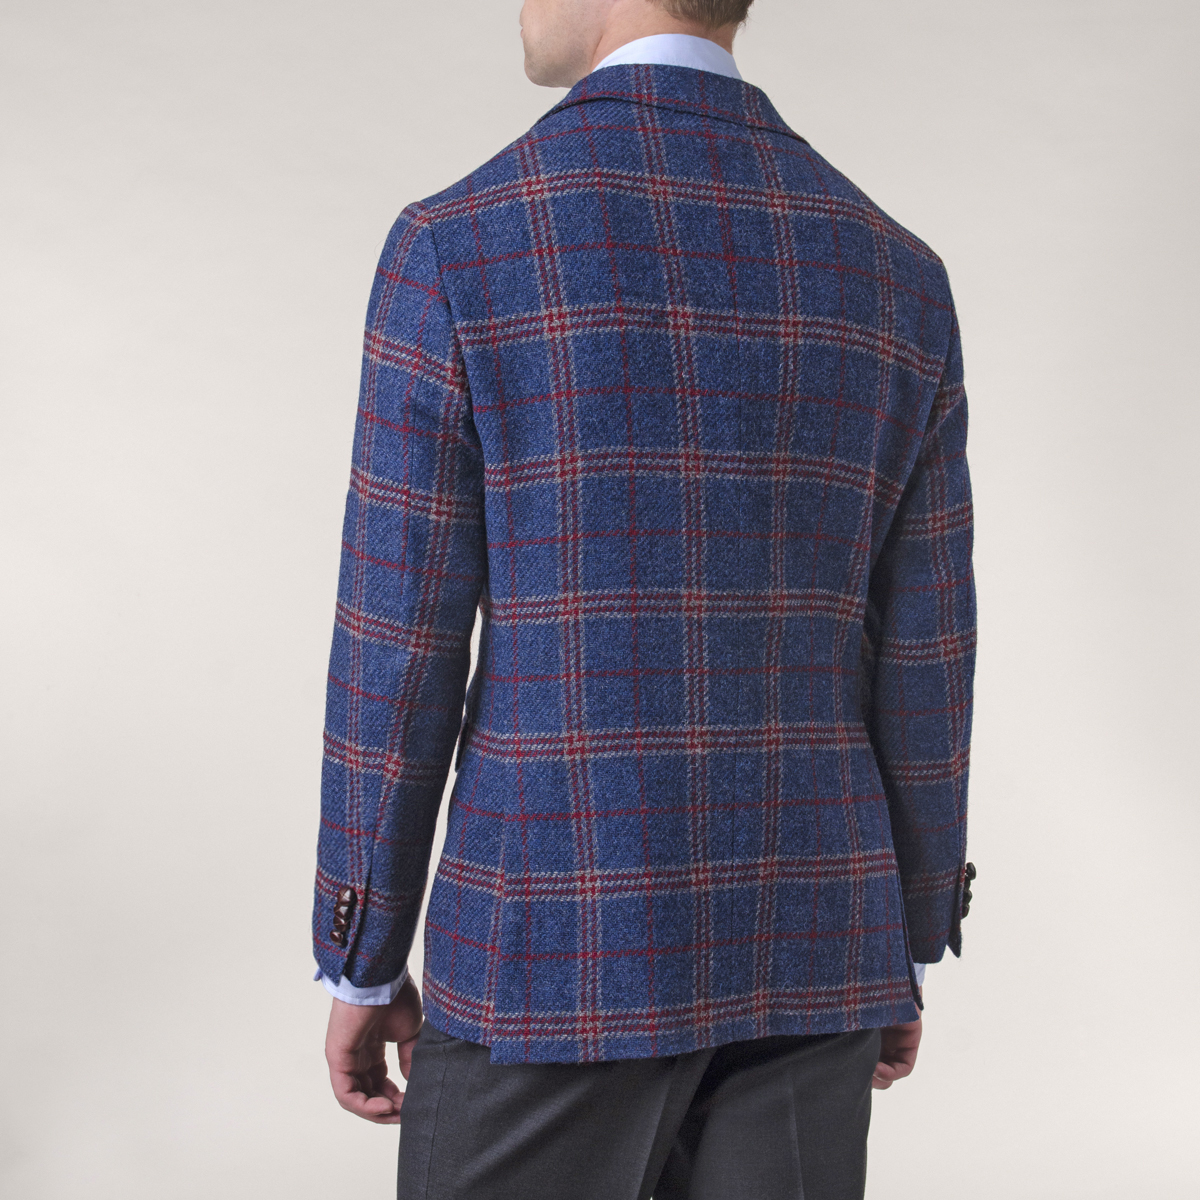 Vestón Newton Lana Campore Tweed Preppy Check